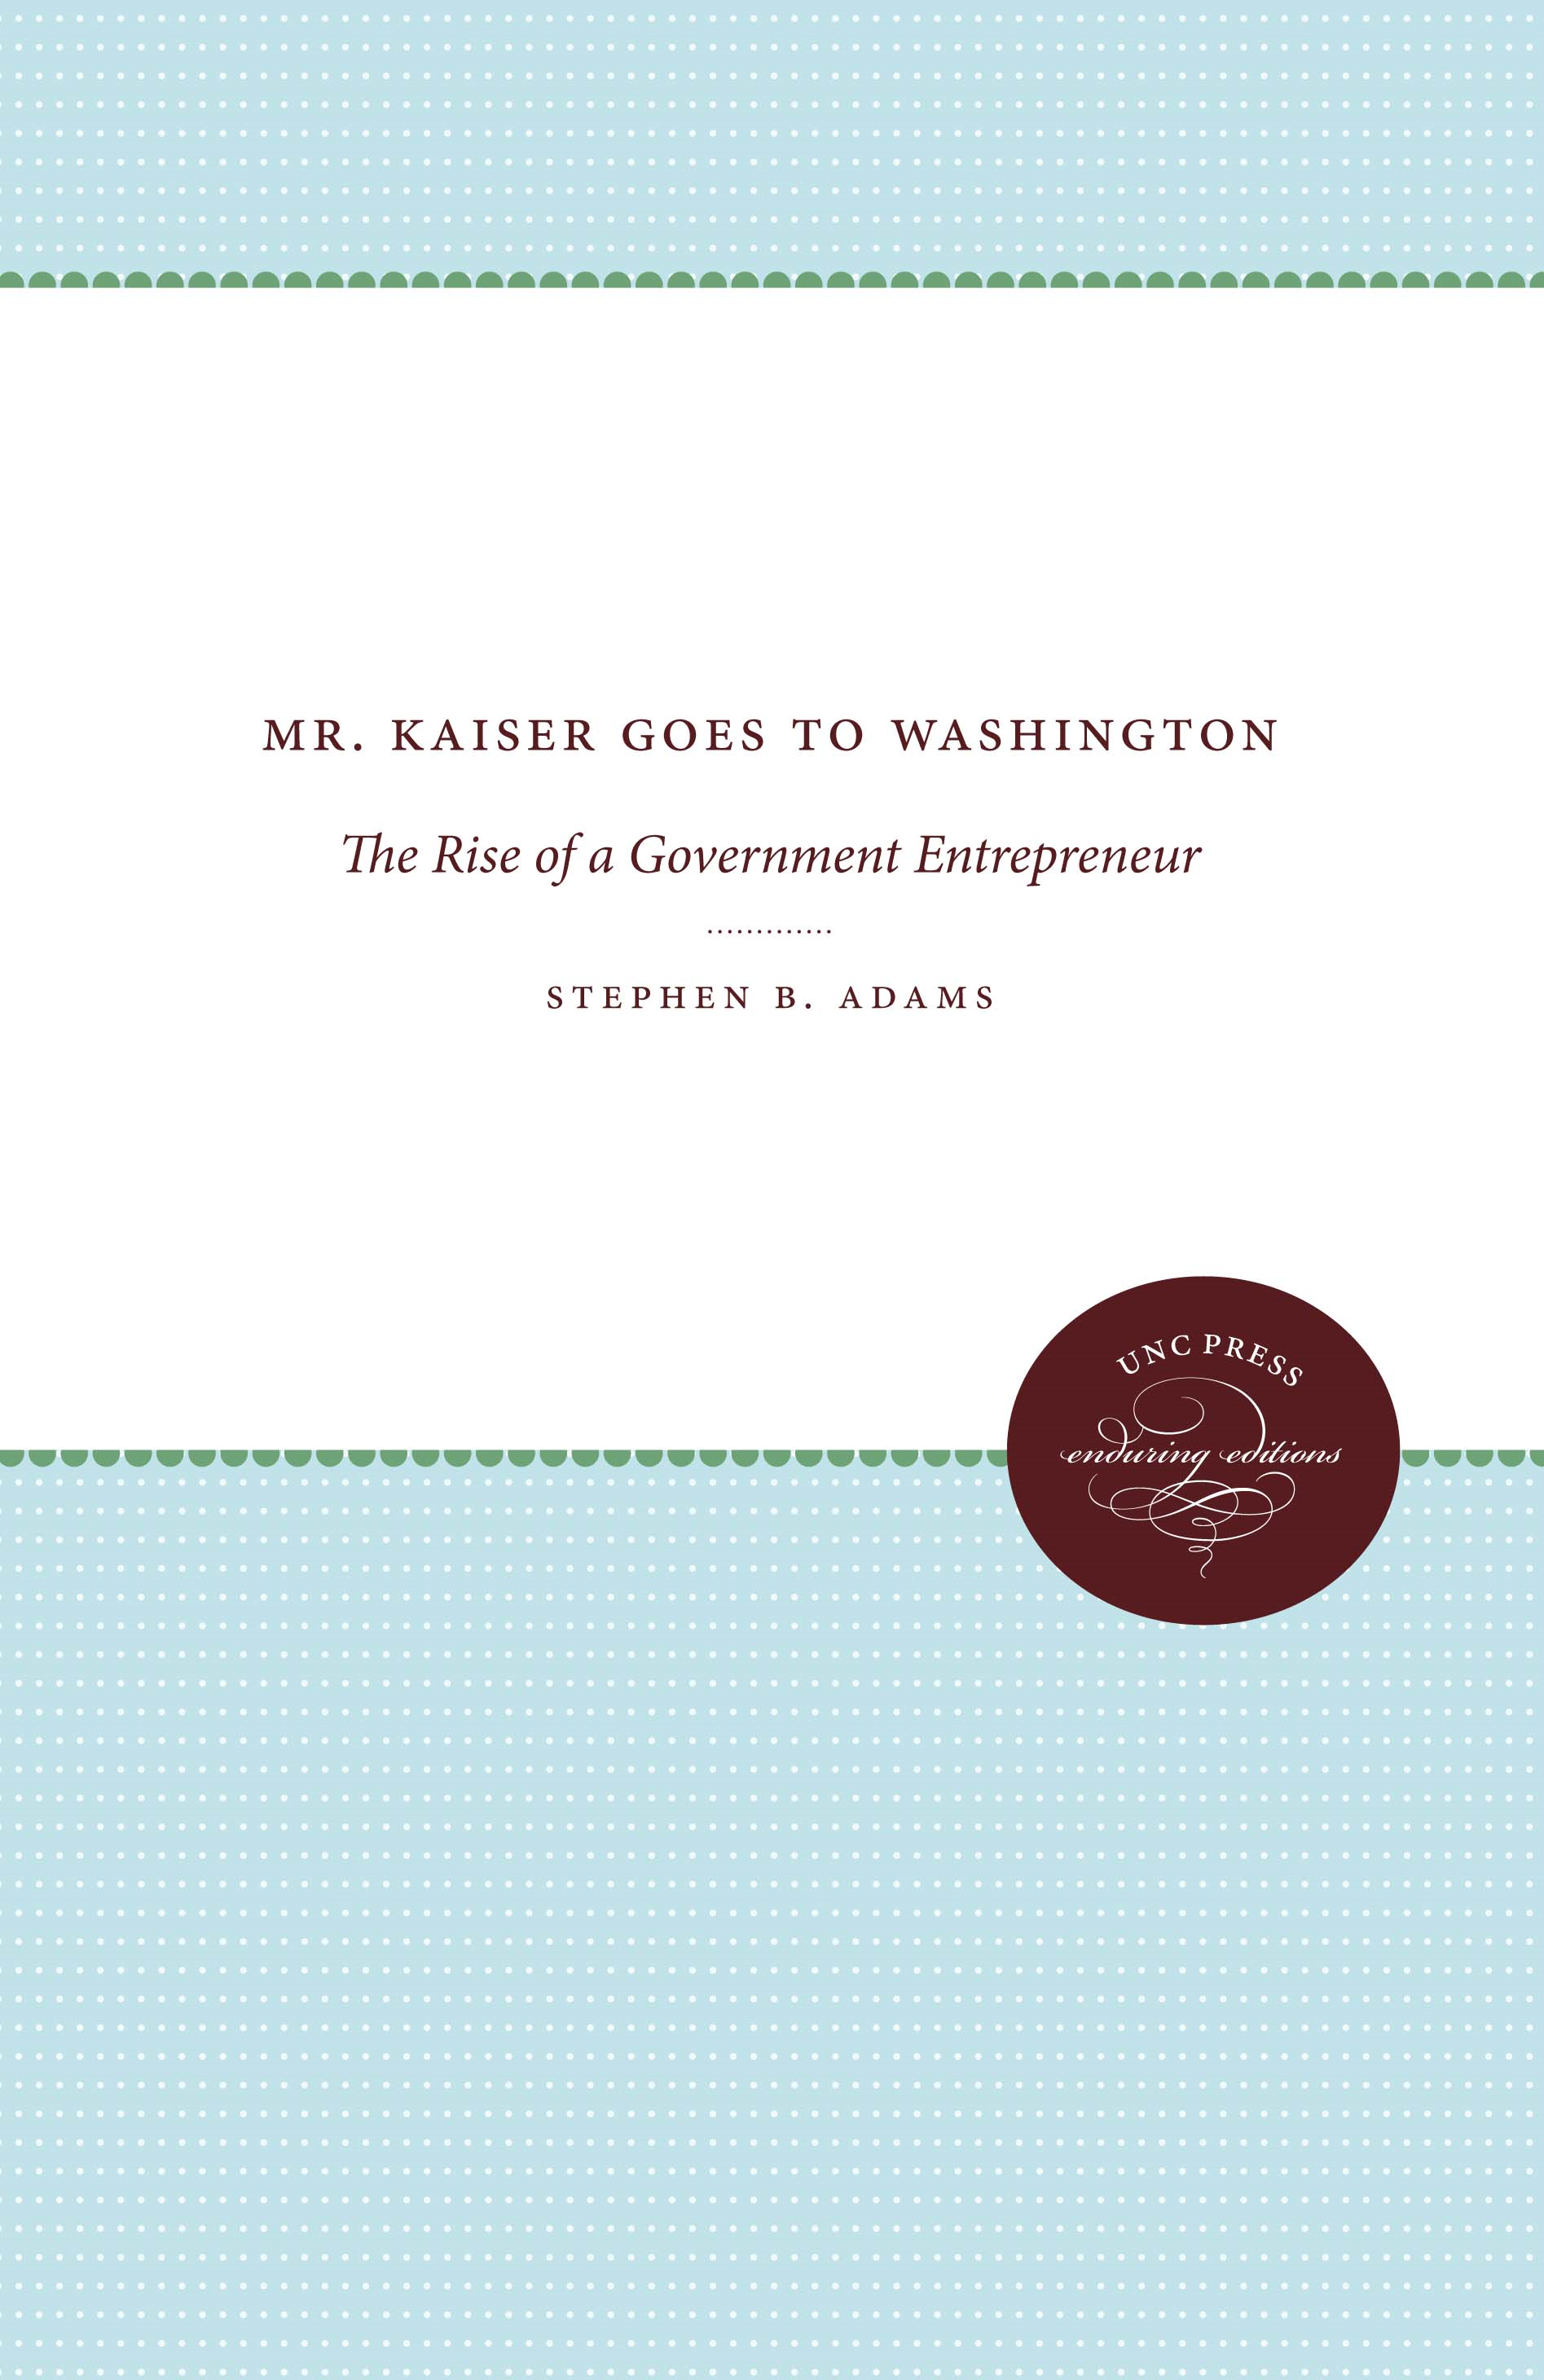 Mr. Kaiser Goes to Washington